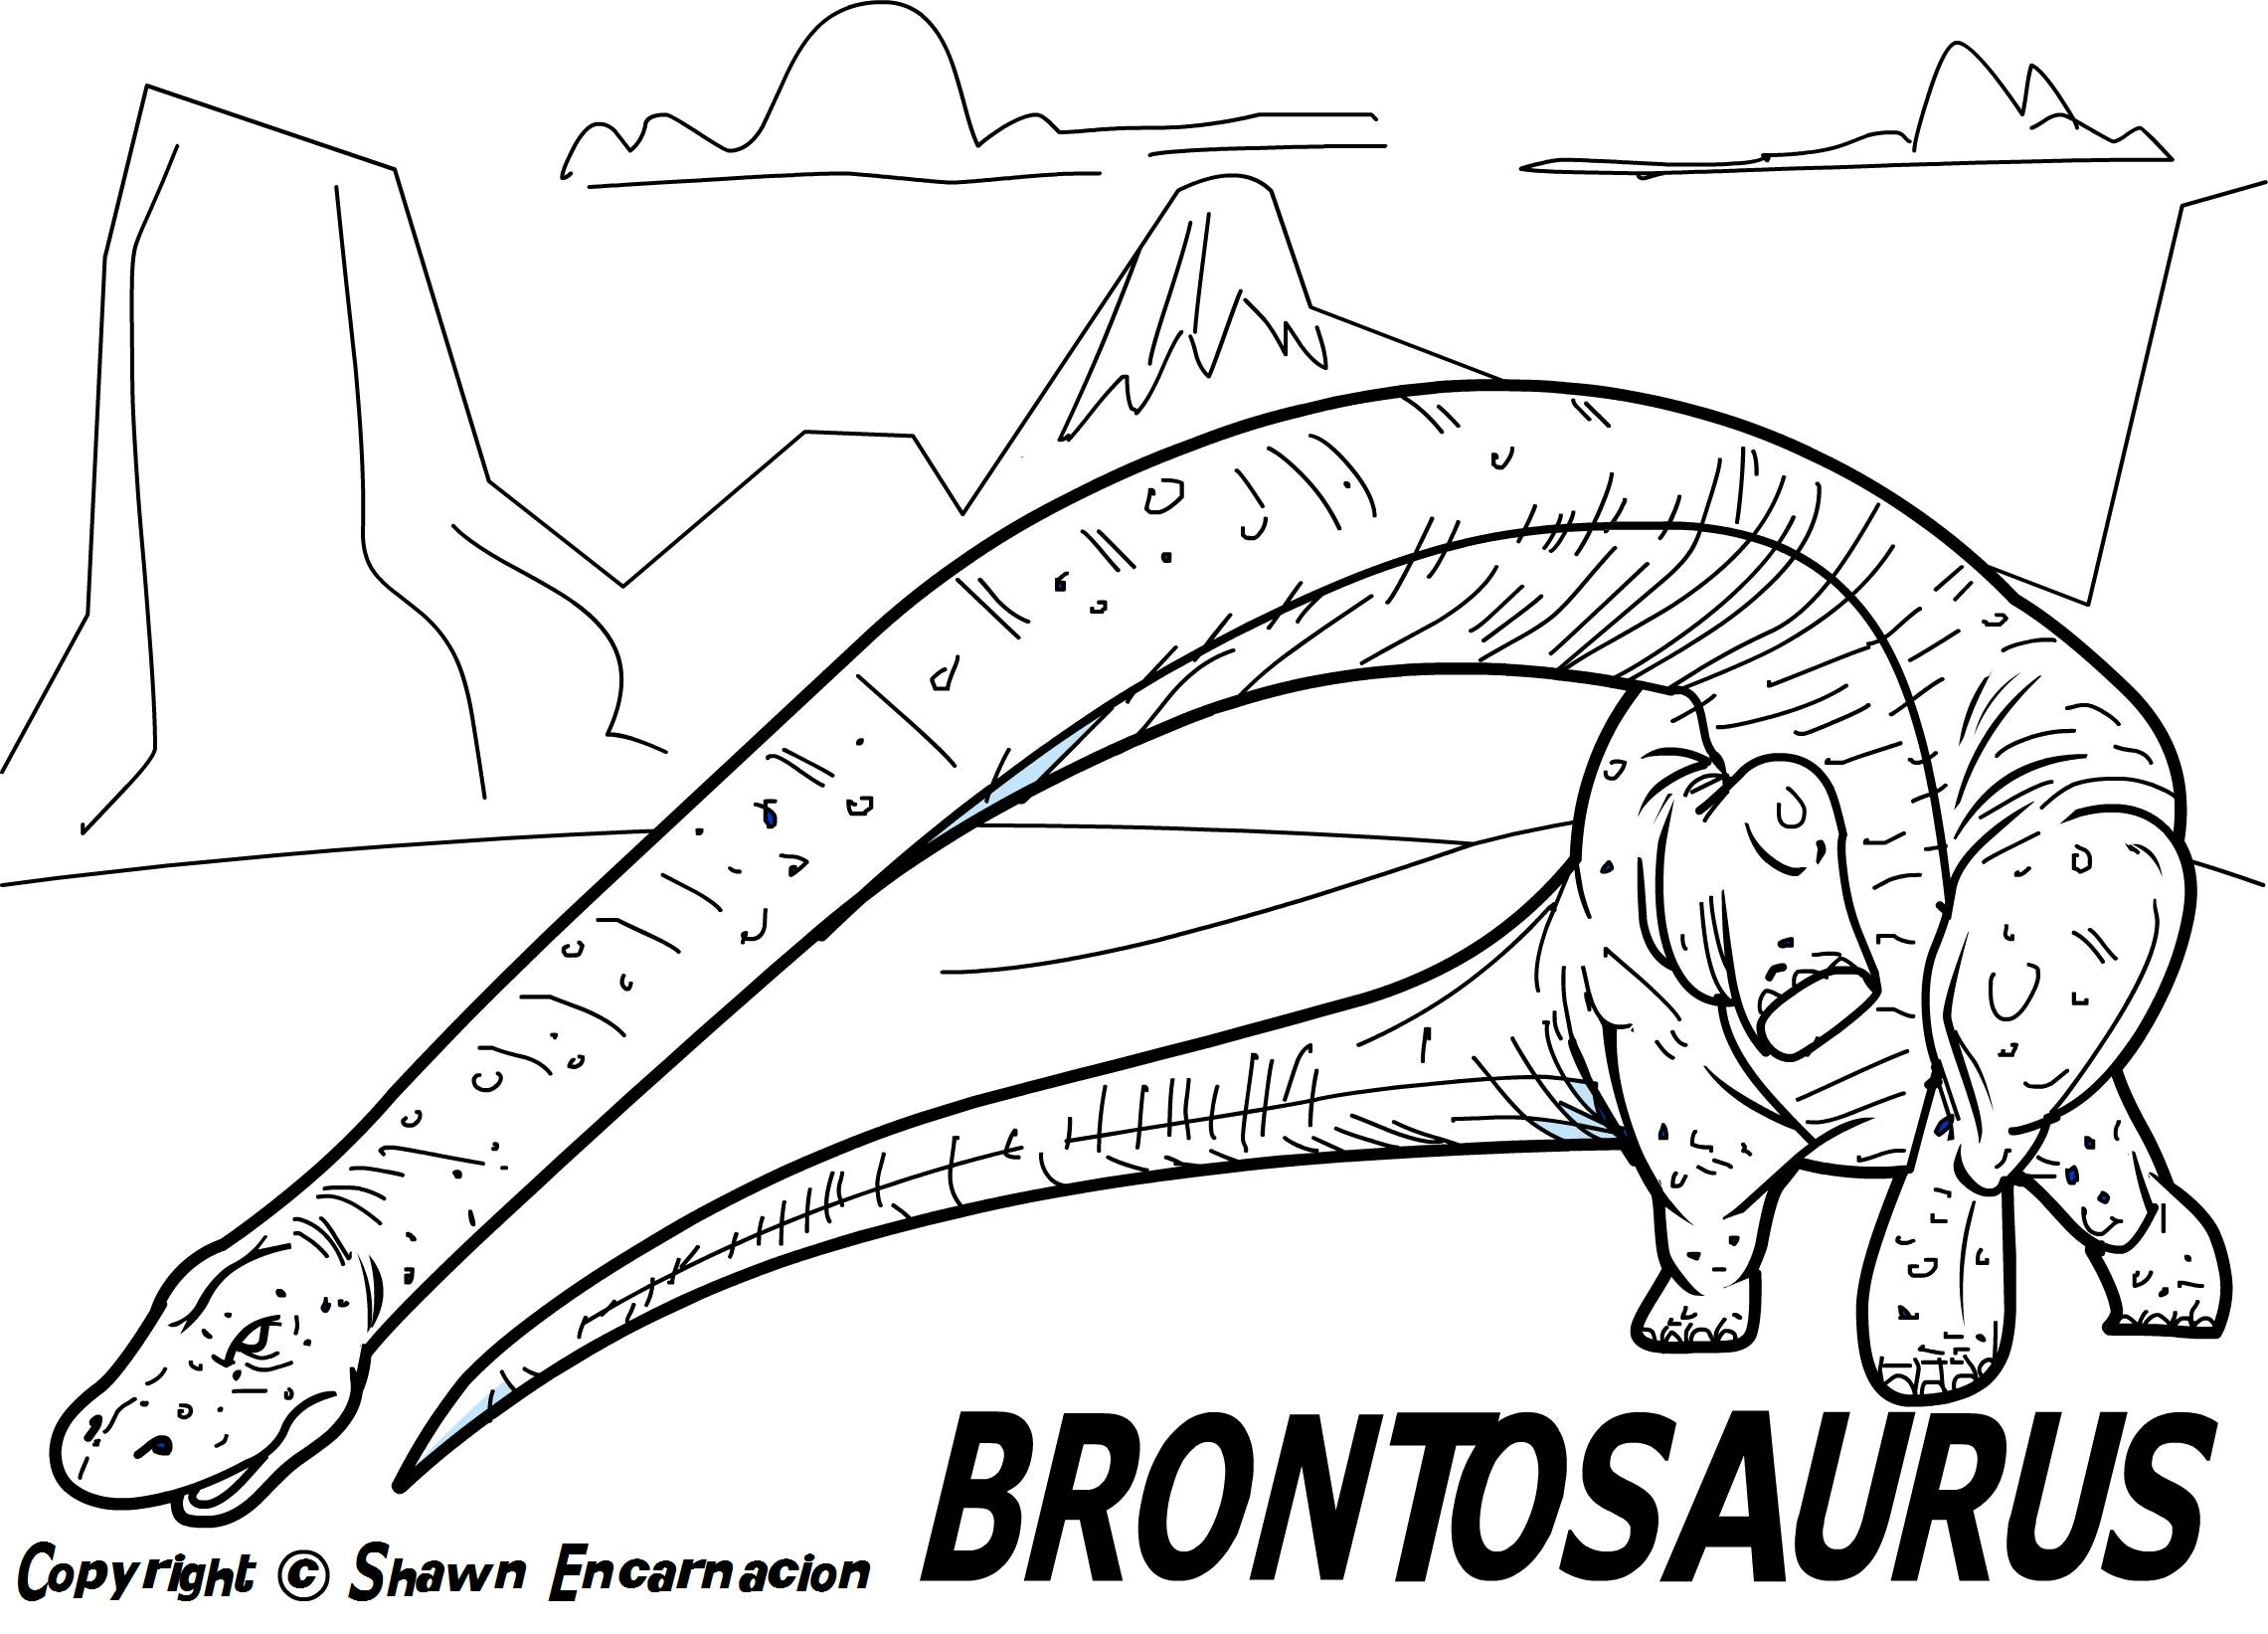 Printable coloring pages dinosaurs - Printable Coloring Pages Dinosaurs 12